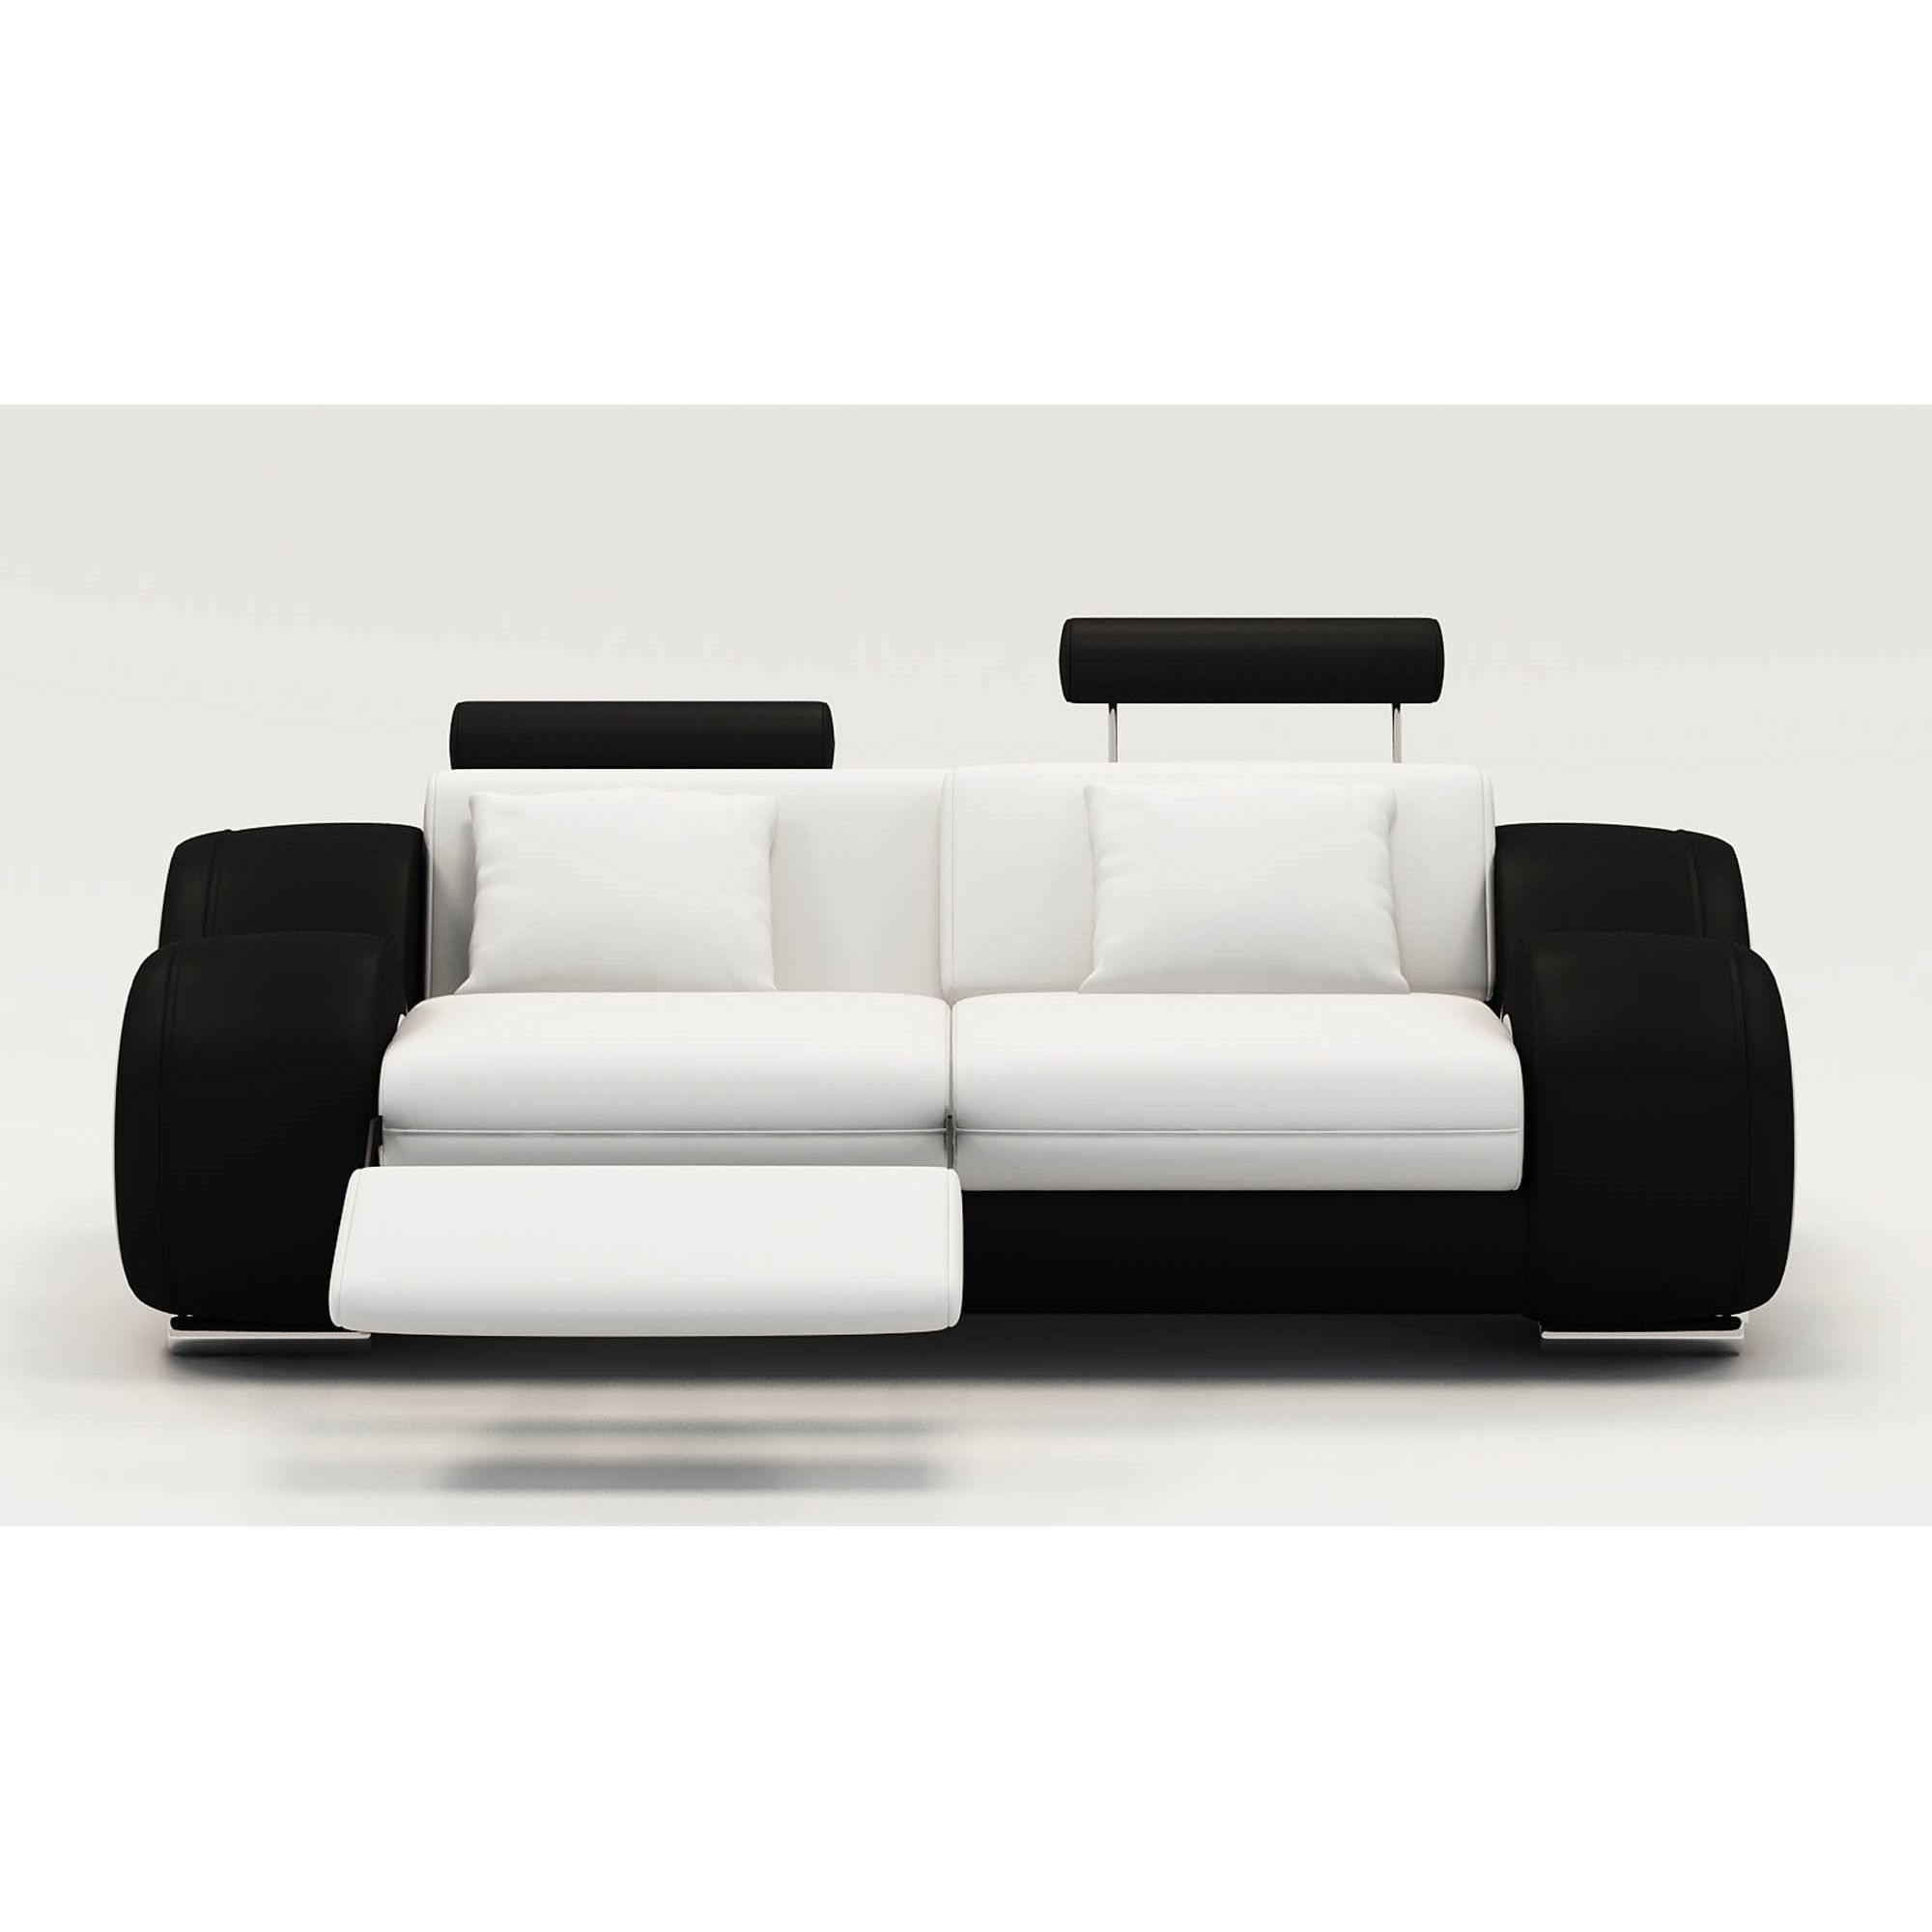 Ensemble Canape Relax Design 3 2 1 Places Blanc Et Noir Oslo